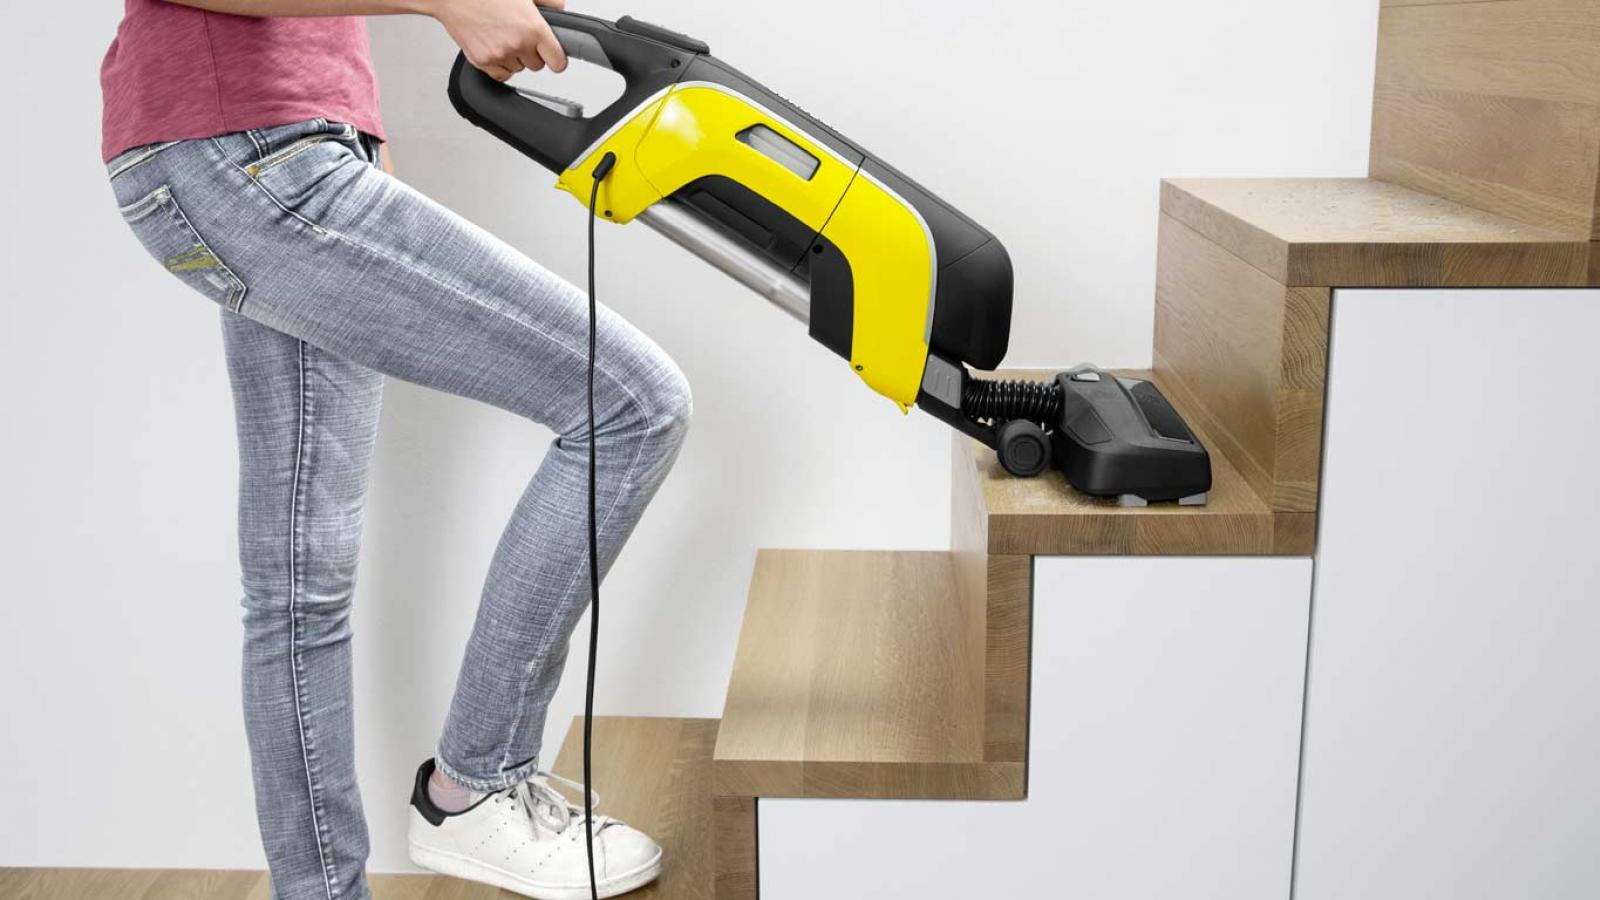 guide d 39 achat 2015 grand public perceuses visseuse. Black Bedroom Furniture Sets. Home Design Ideas